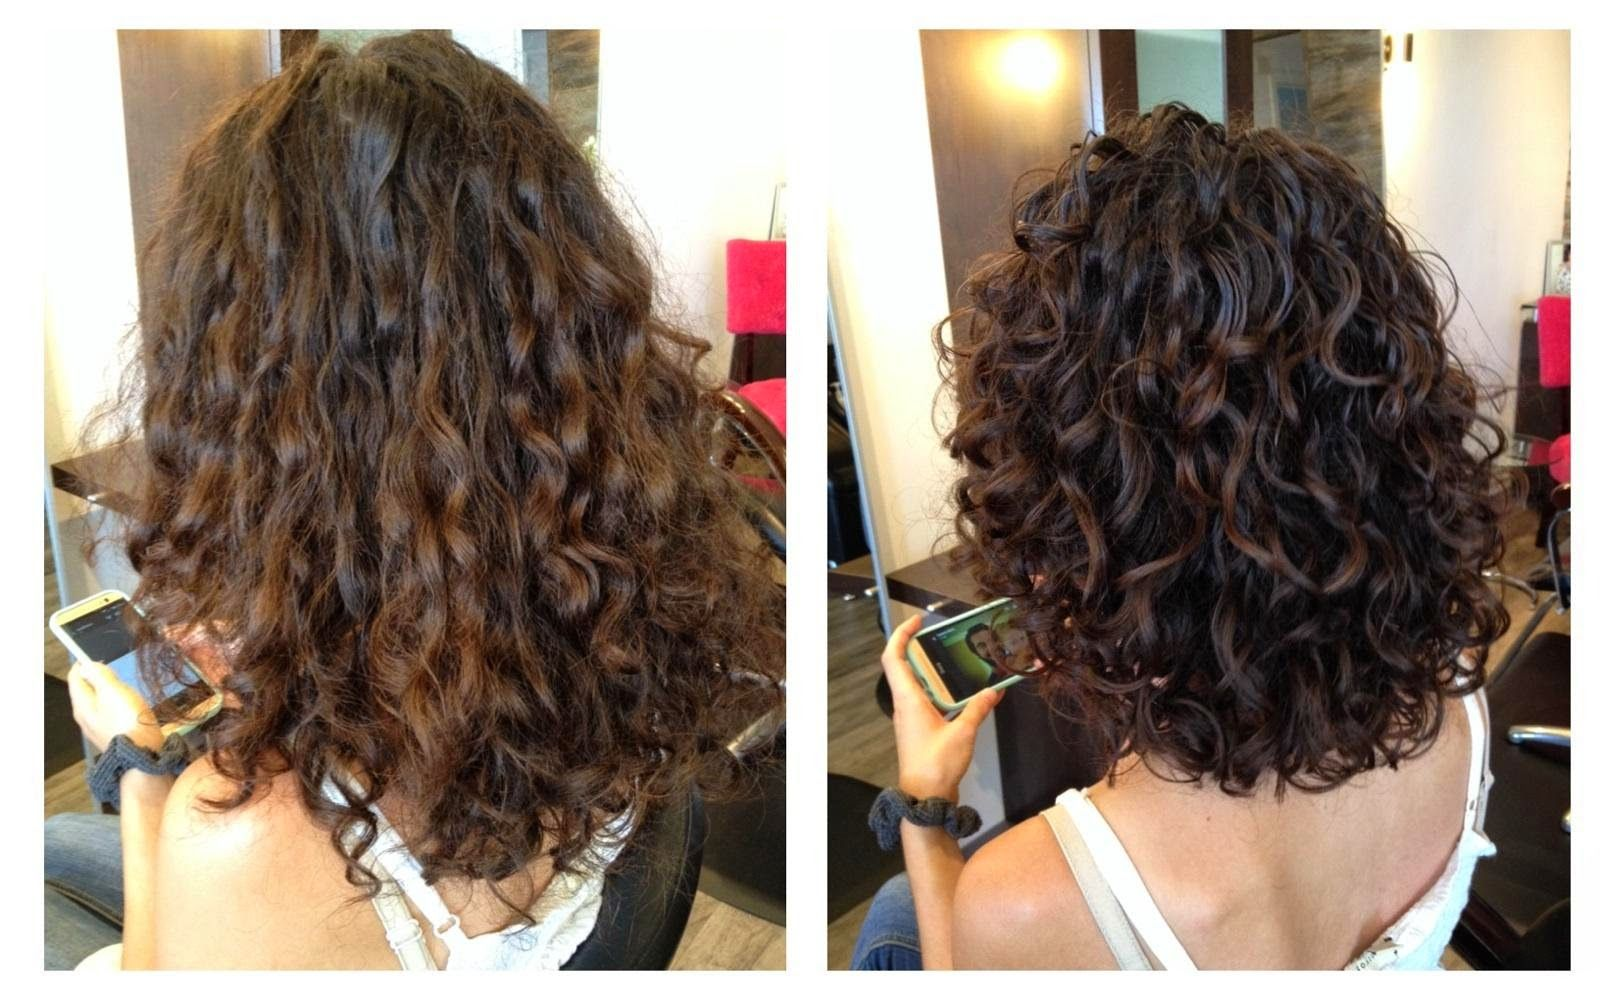 Another day, another Deva cut #layeredcurlyhair